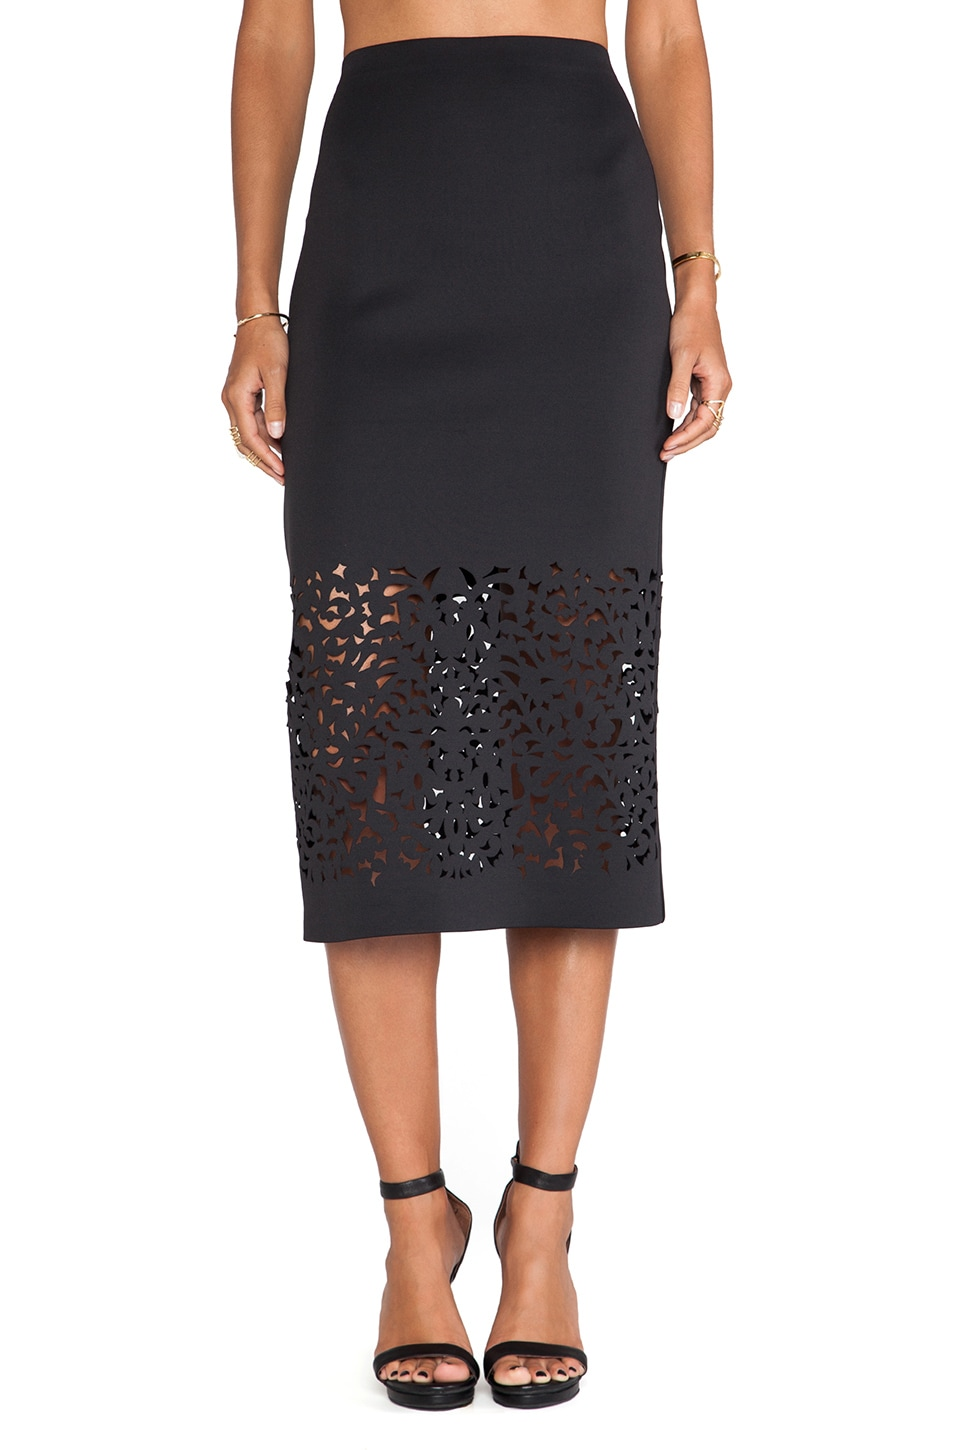 Clover Canyon Lasercut Neoprene Skirt in Black